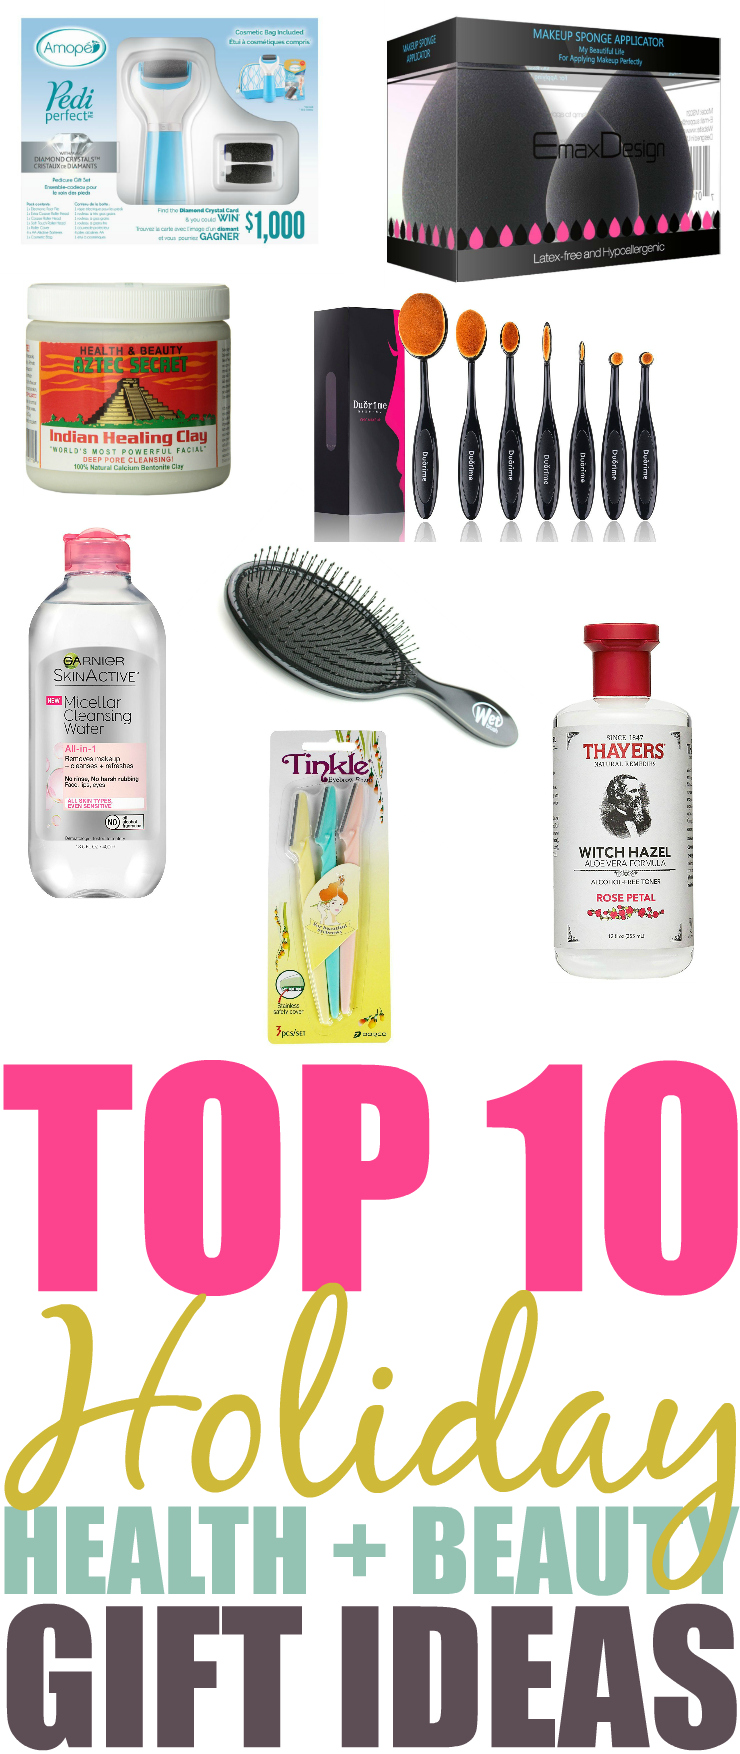 Top 10 Holiday Healthy & Beauty Gift Ideas